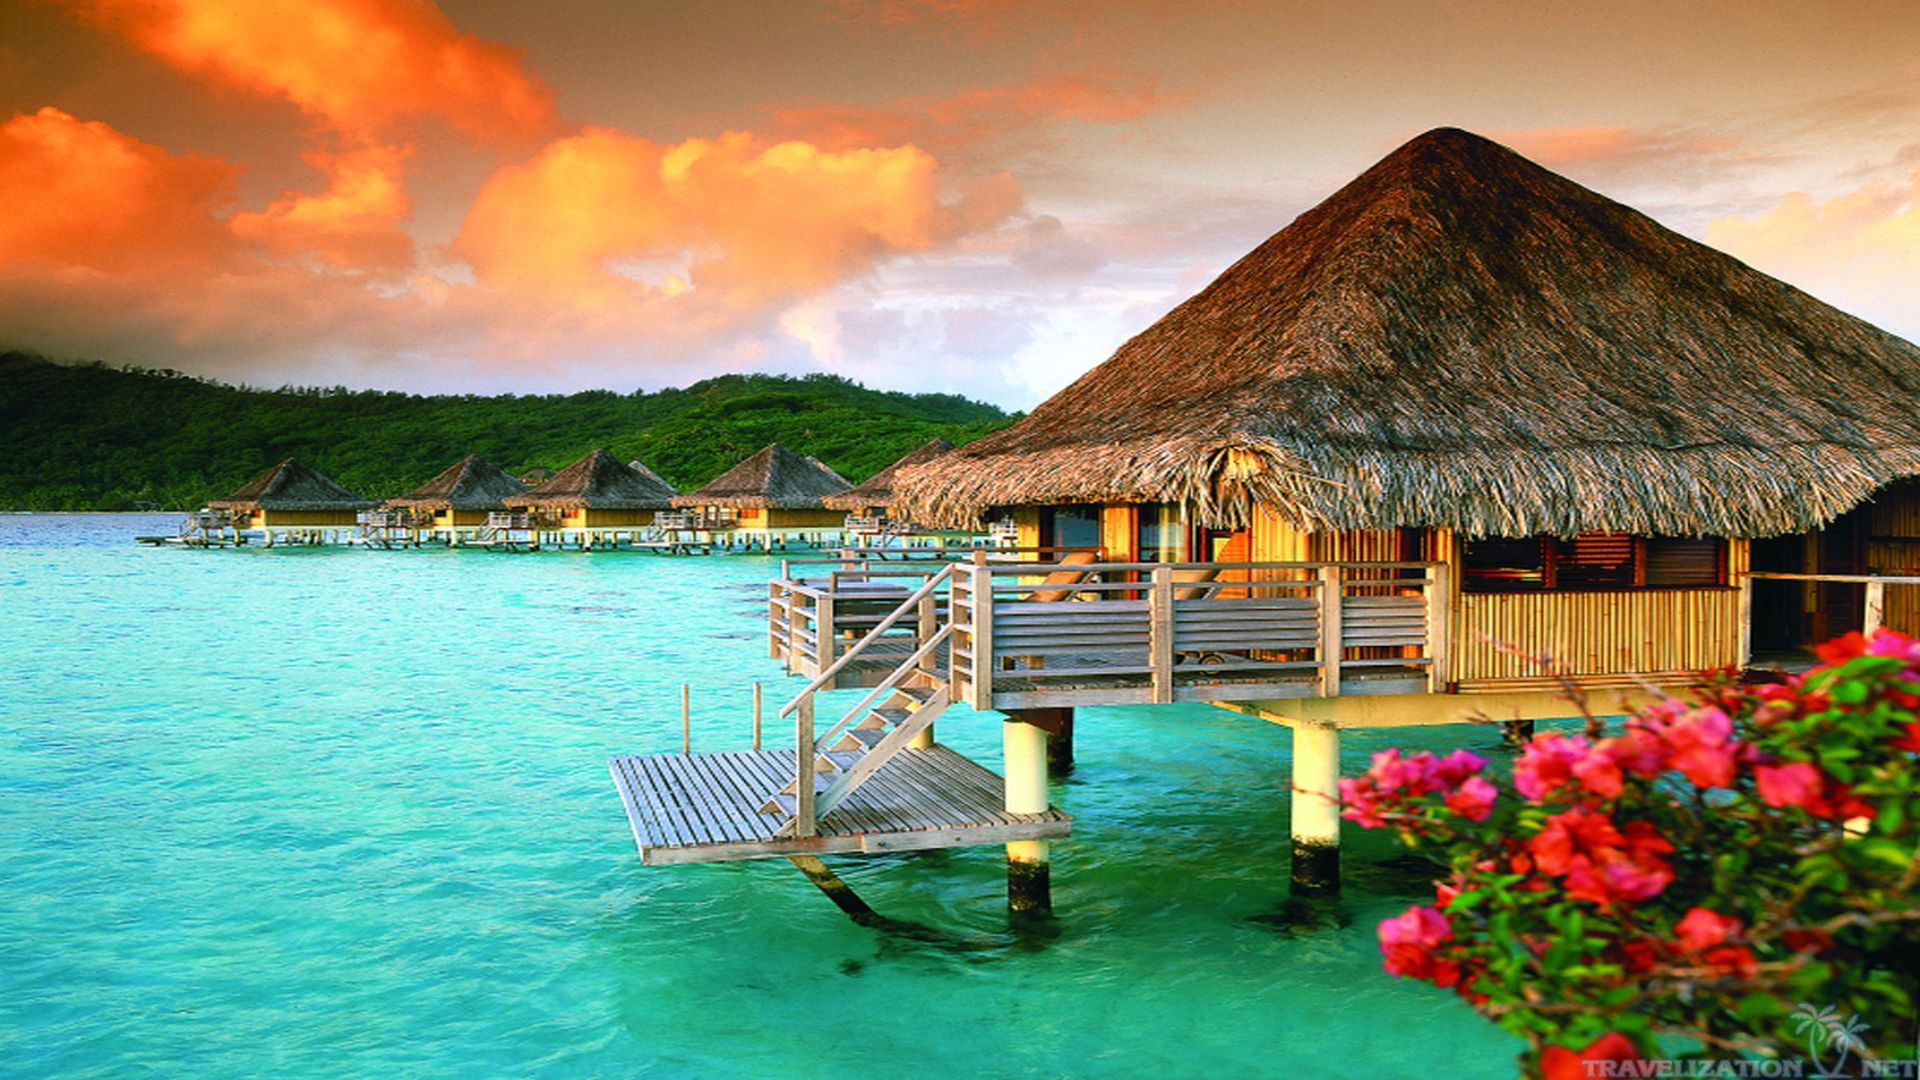 Bora Bora Screensavers Wallpapers - WallpaperSafari